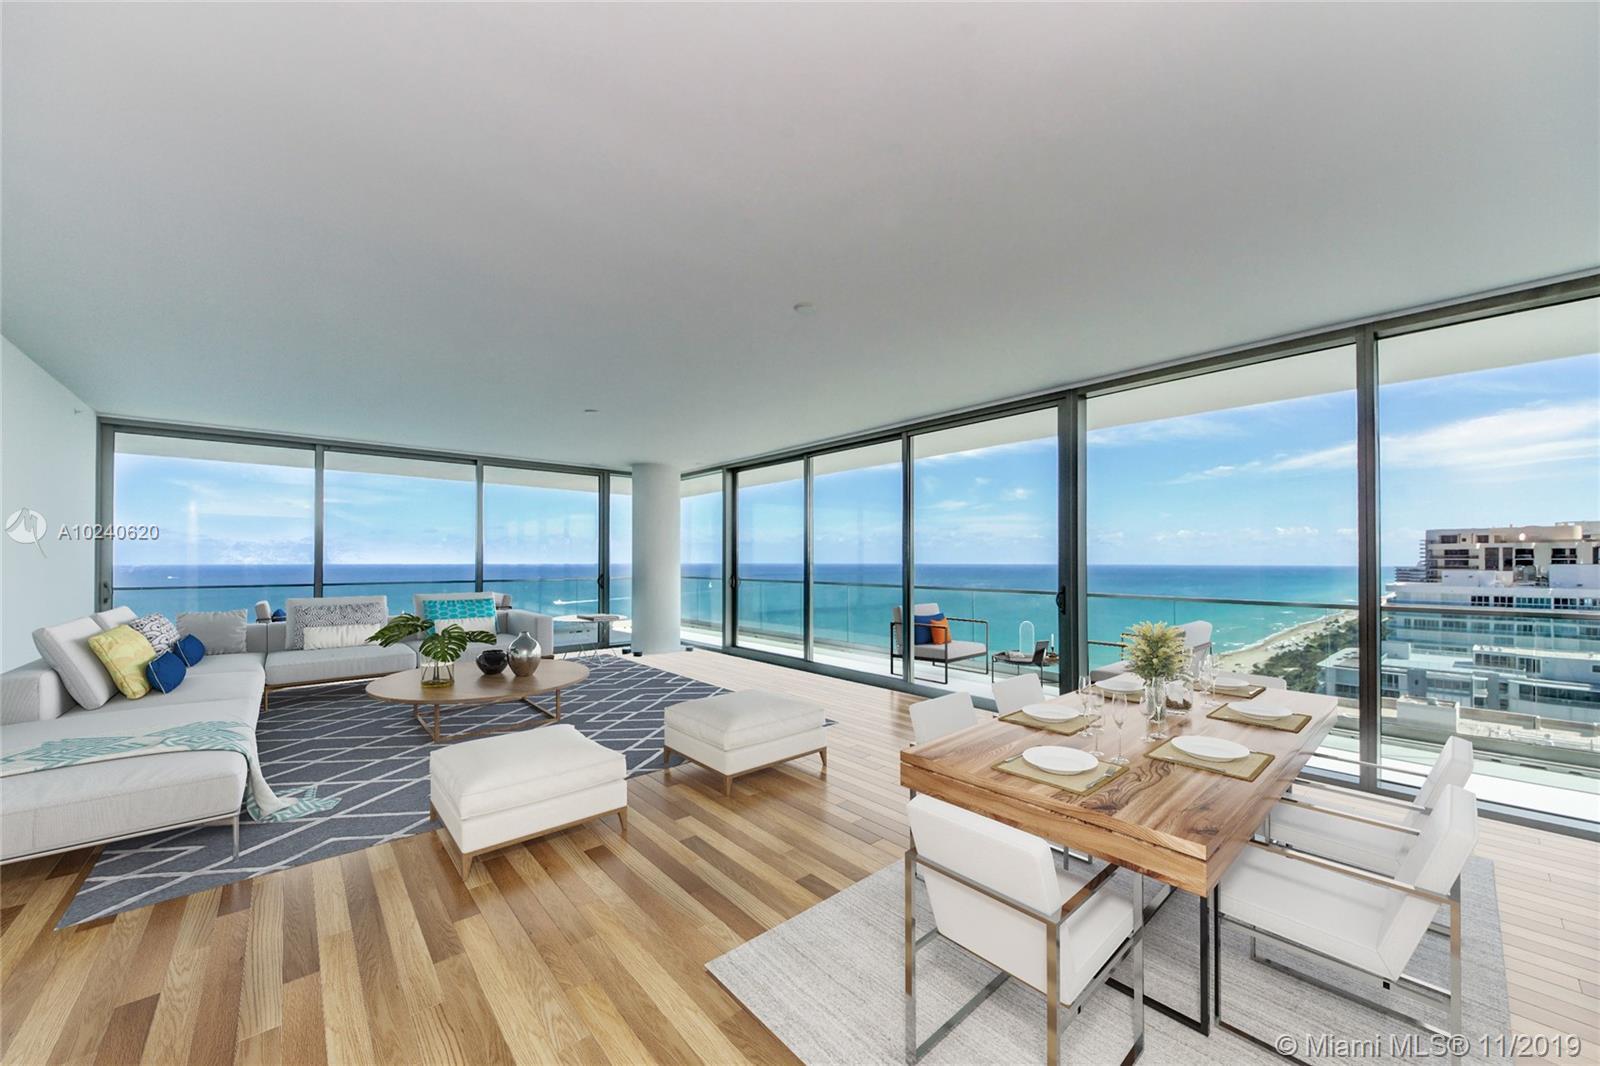 10201 Collins Ave, Unit #2401S Luxury Real Estate